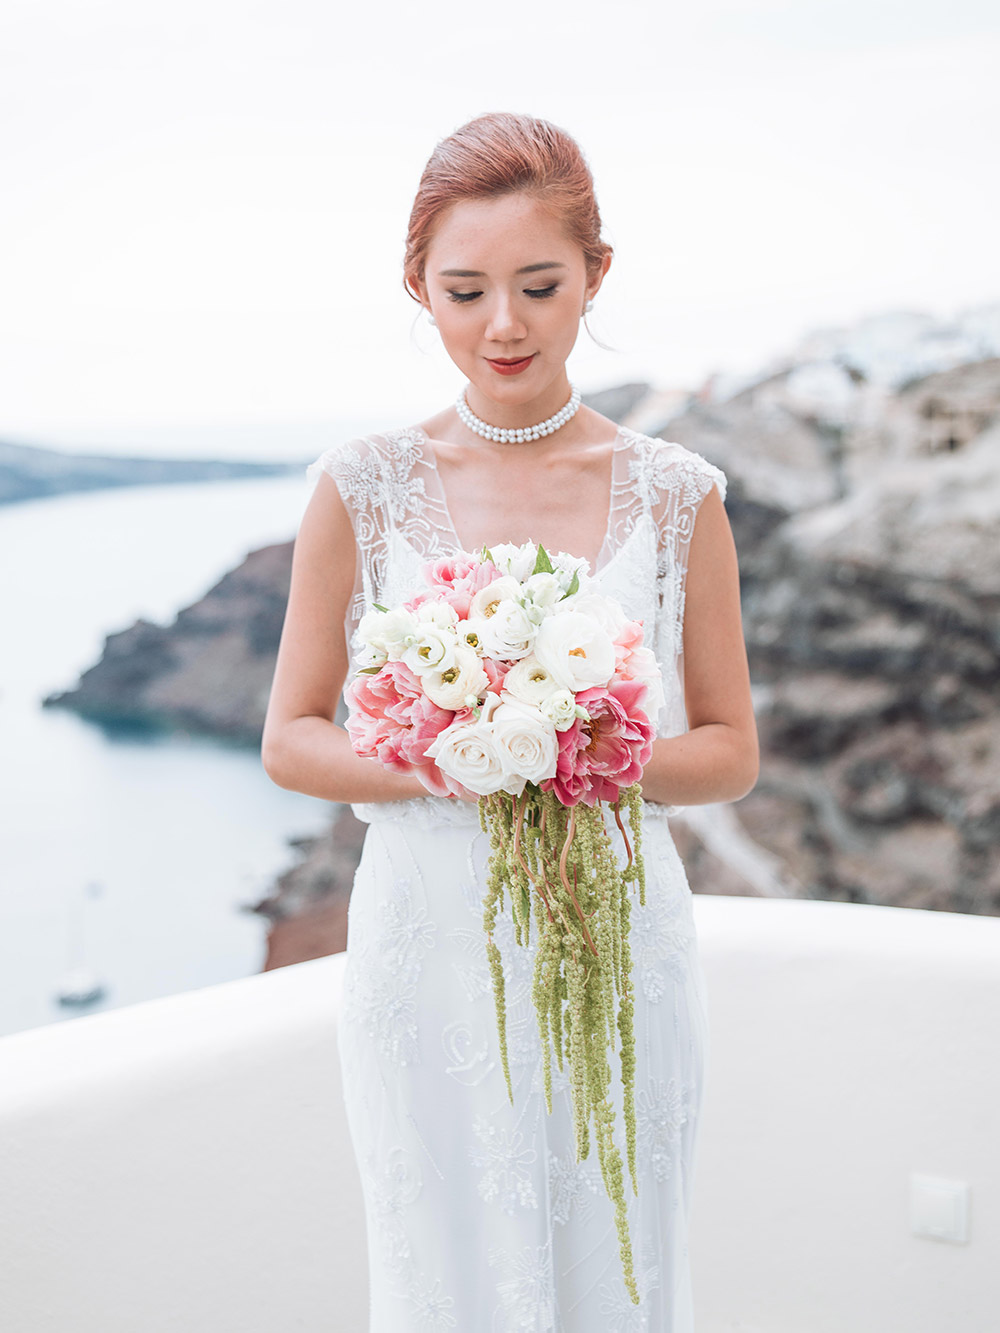 Photography by Sunrise Greece. www.theweddingnotebook.com